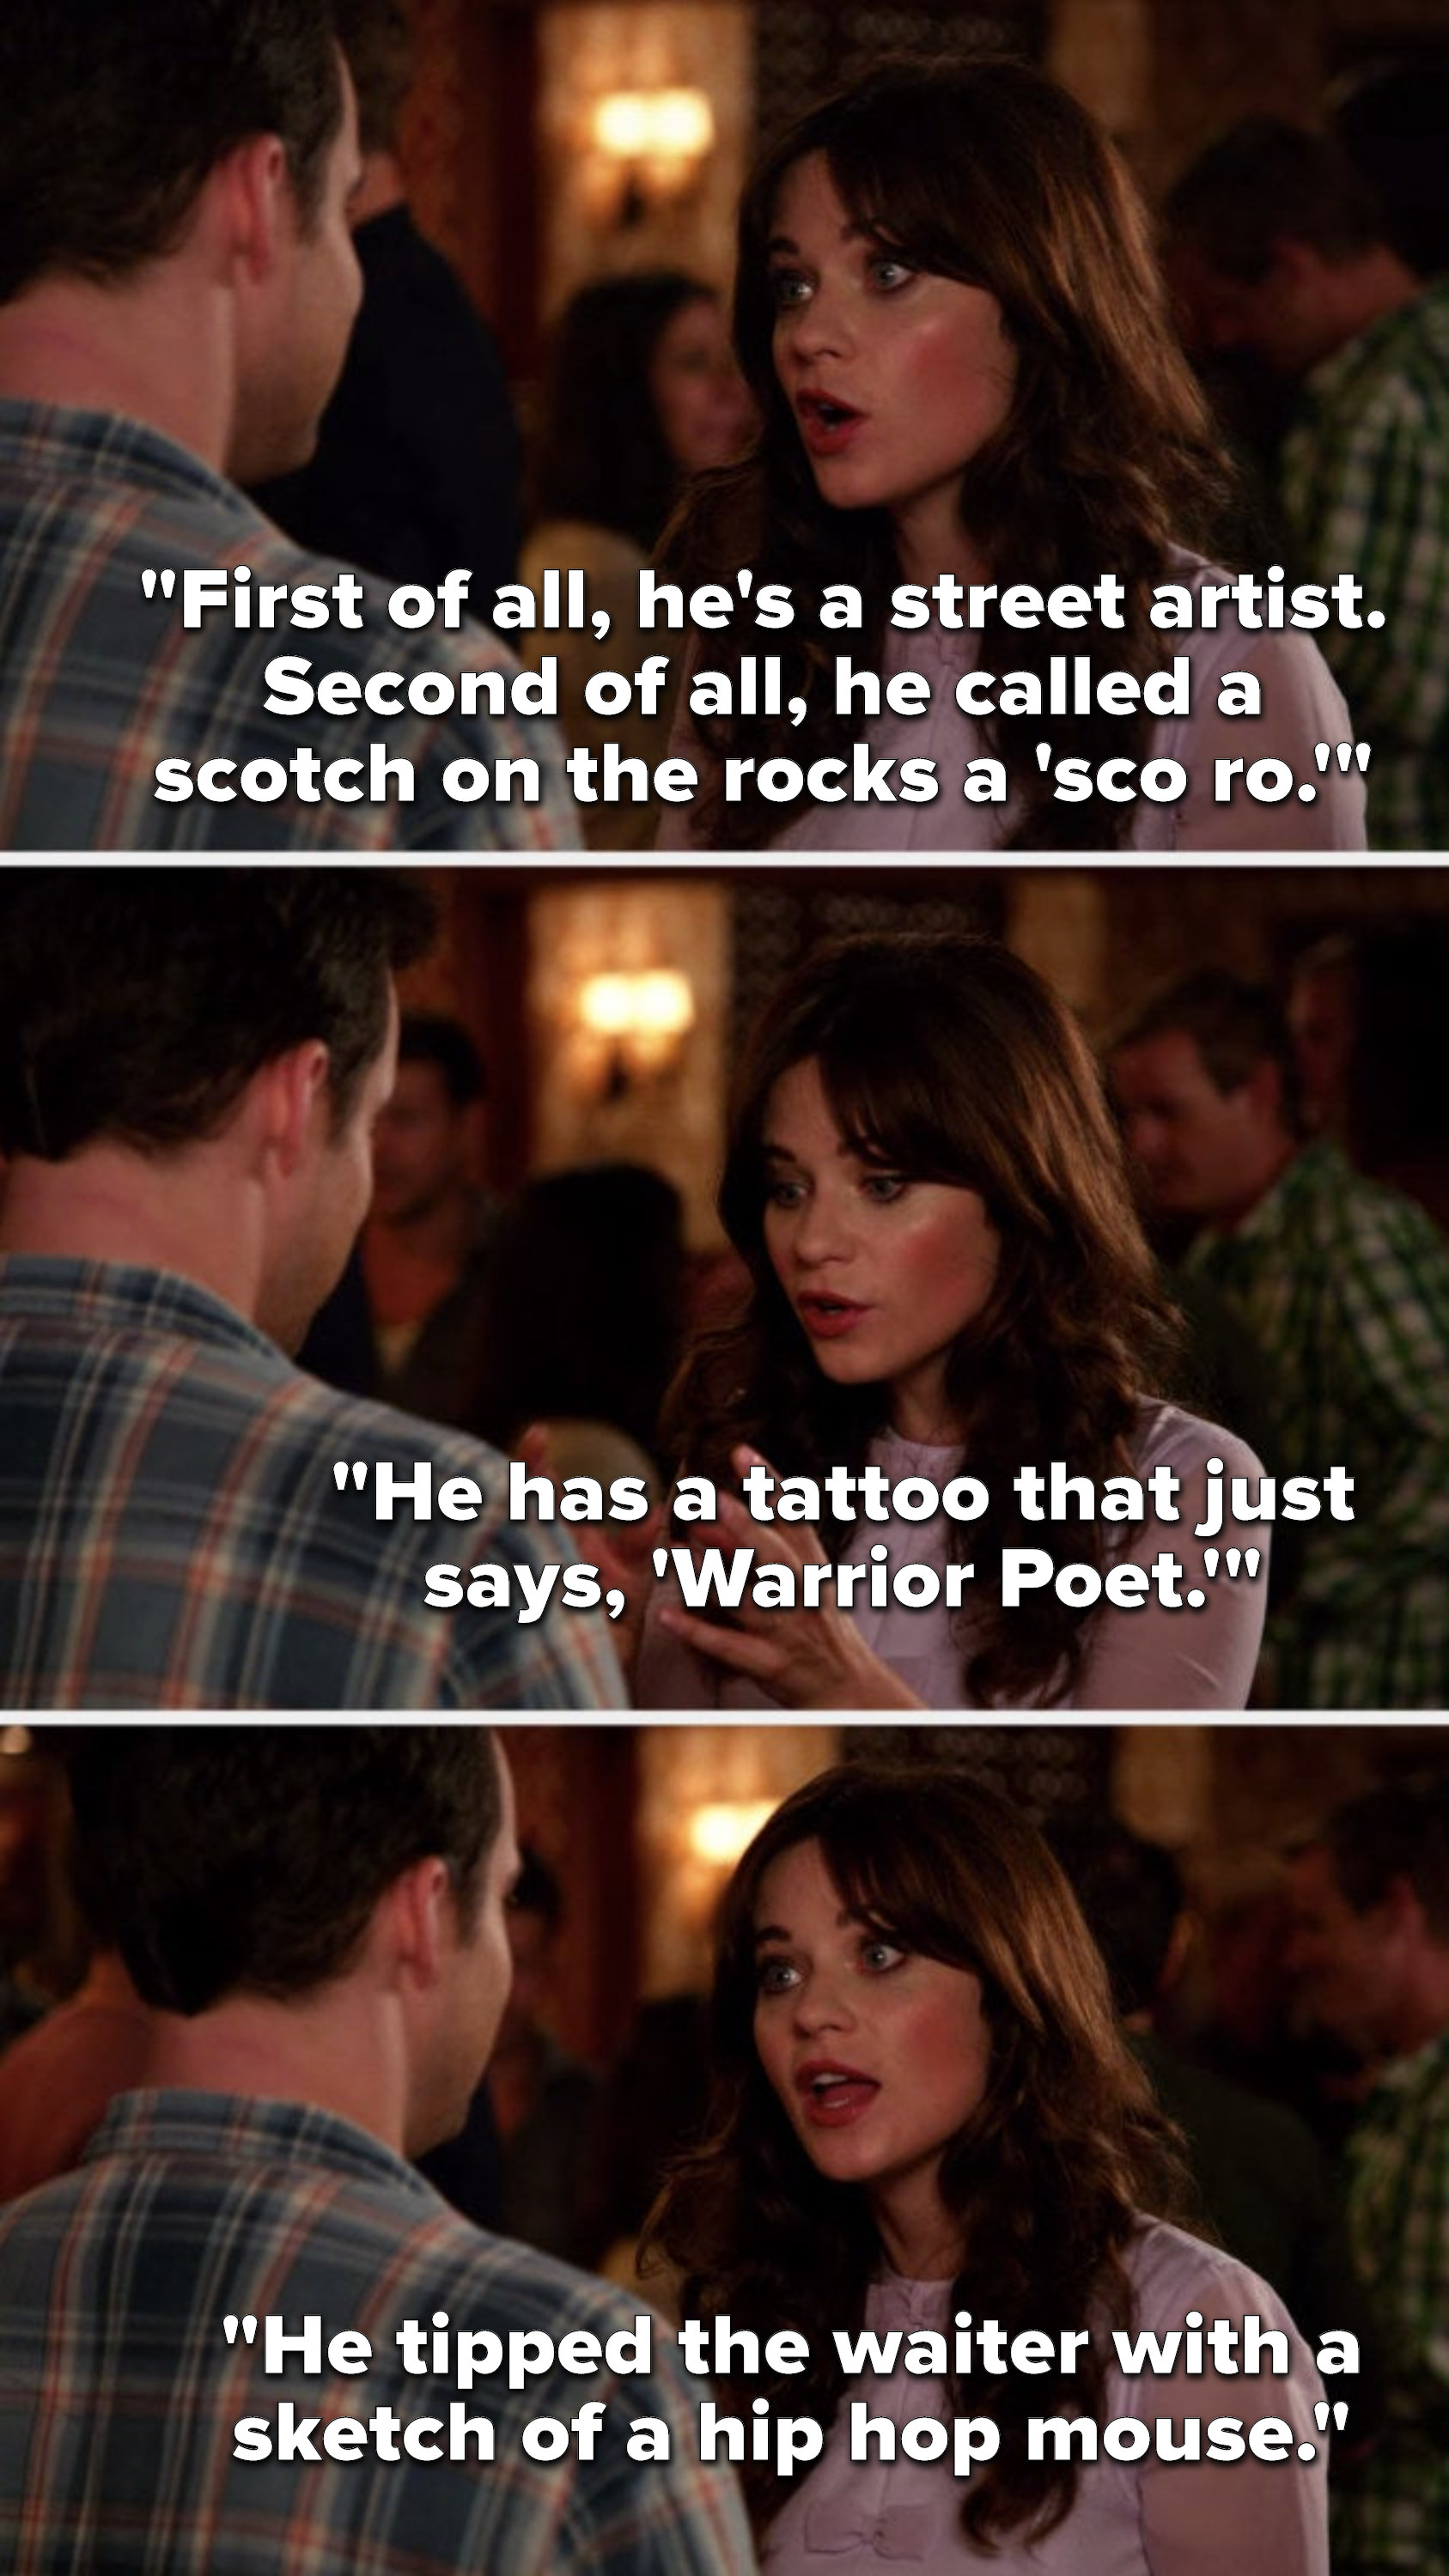 Jess says, First of all, he's a street artist, second of all, he called a scotch on the rocks a sco ro, he has a tattoo that just says Warrior Poet, He tipped the waiter with a sketch of a hip hop mouse